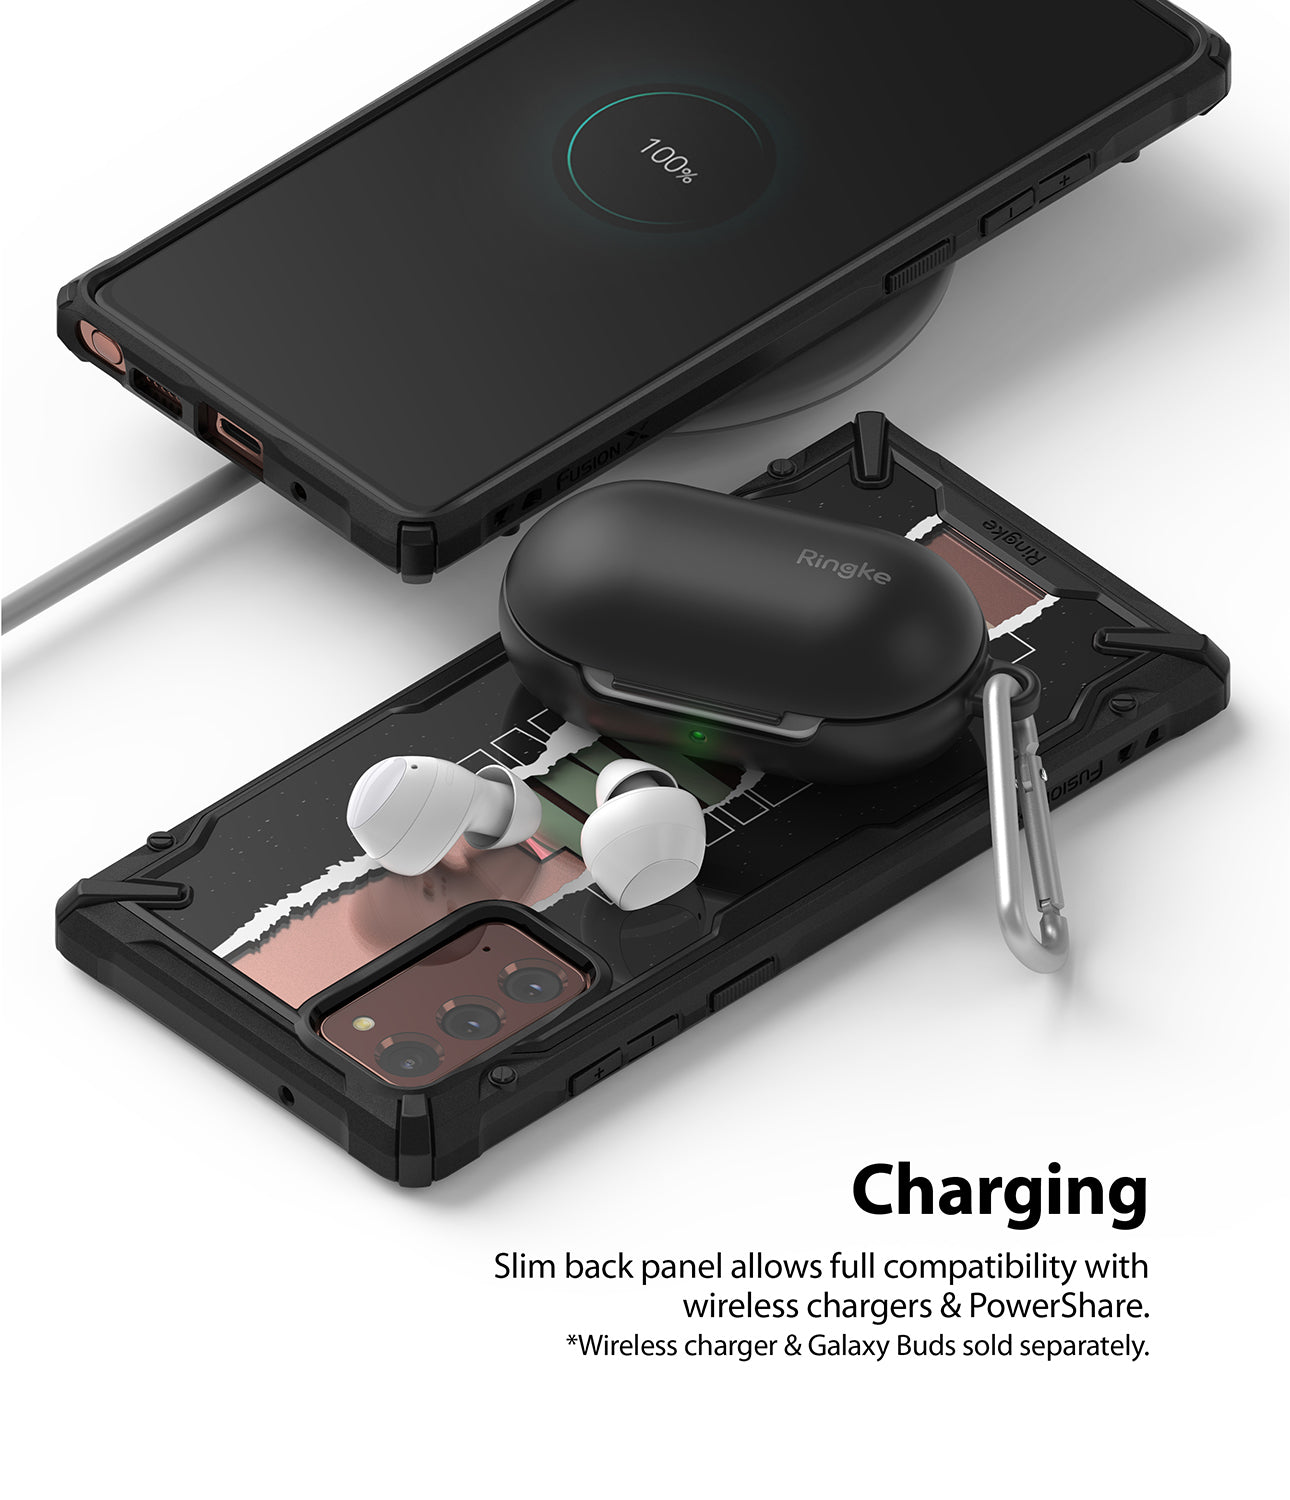 slim back panel allows full compatibility with wireless charging & powershare